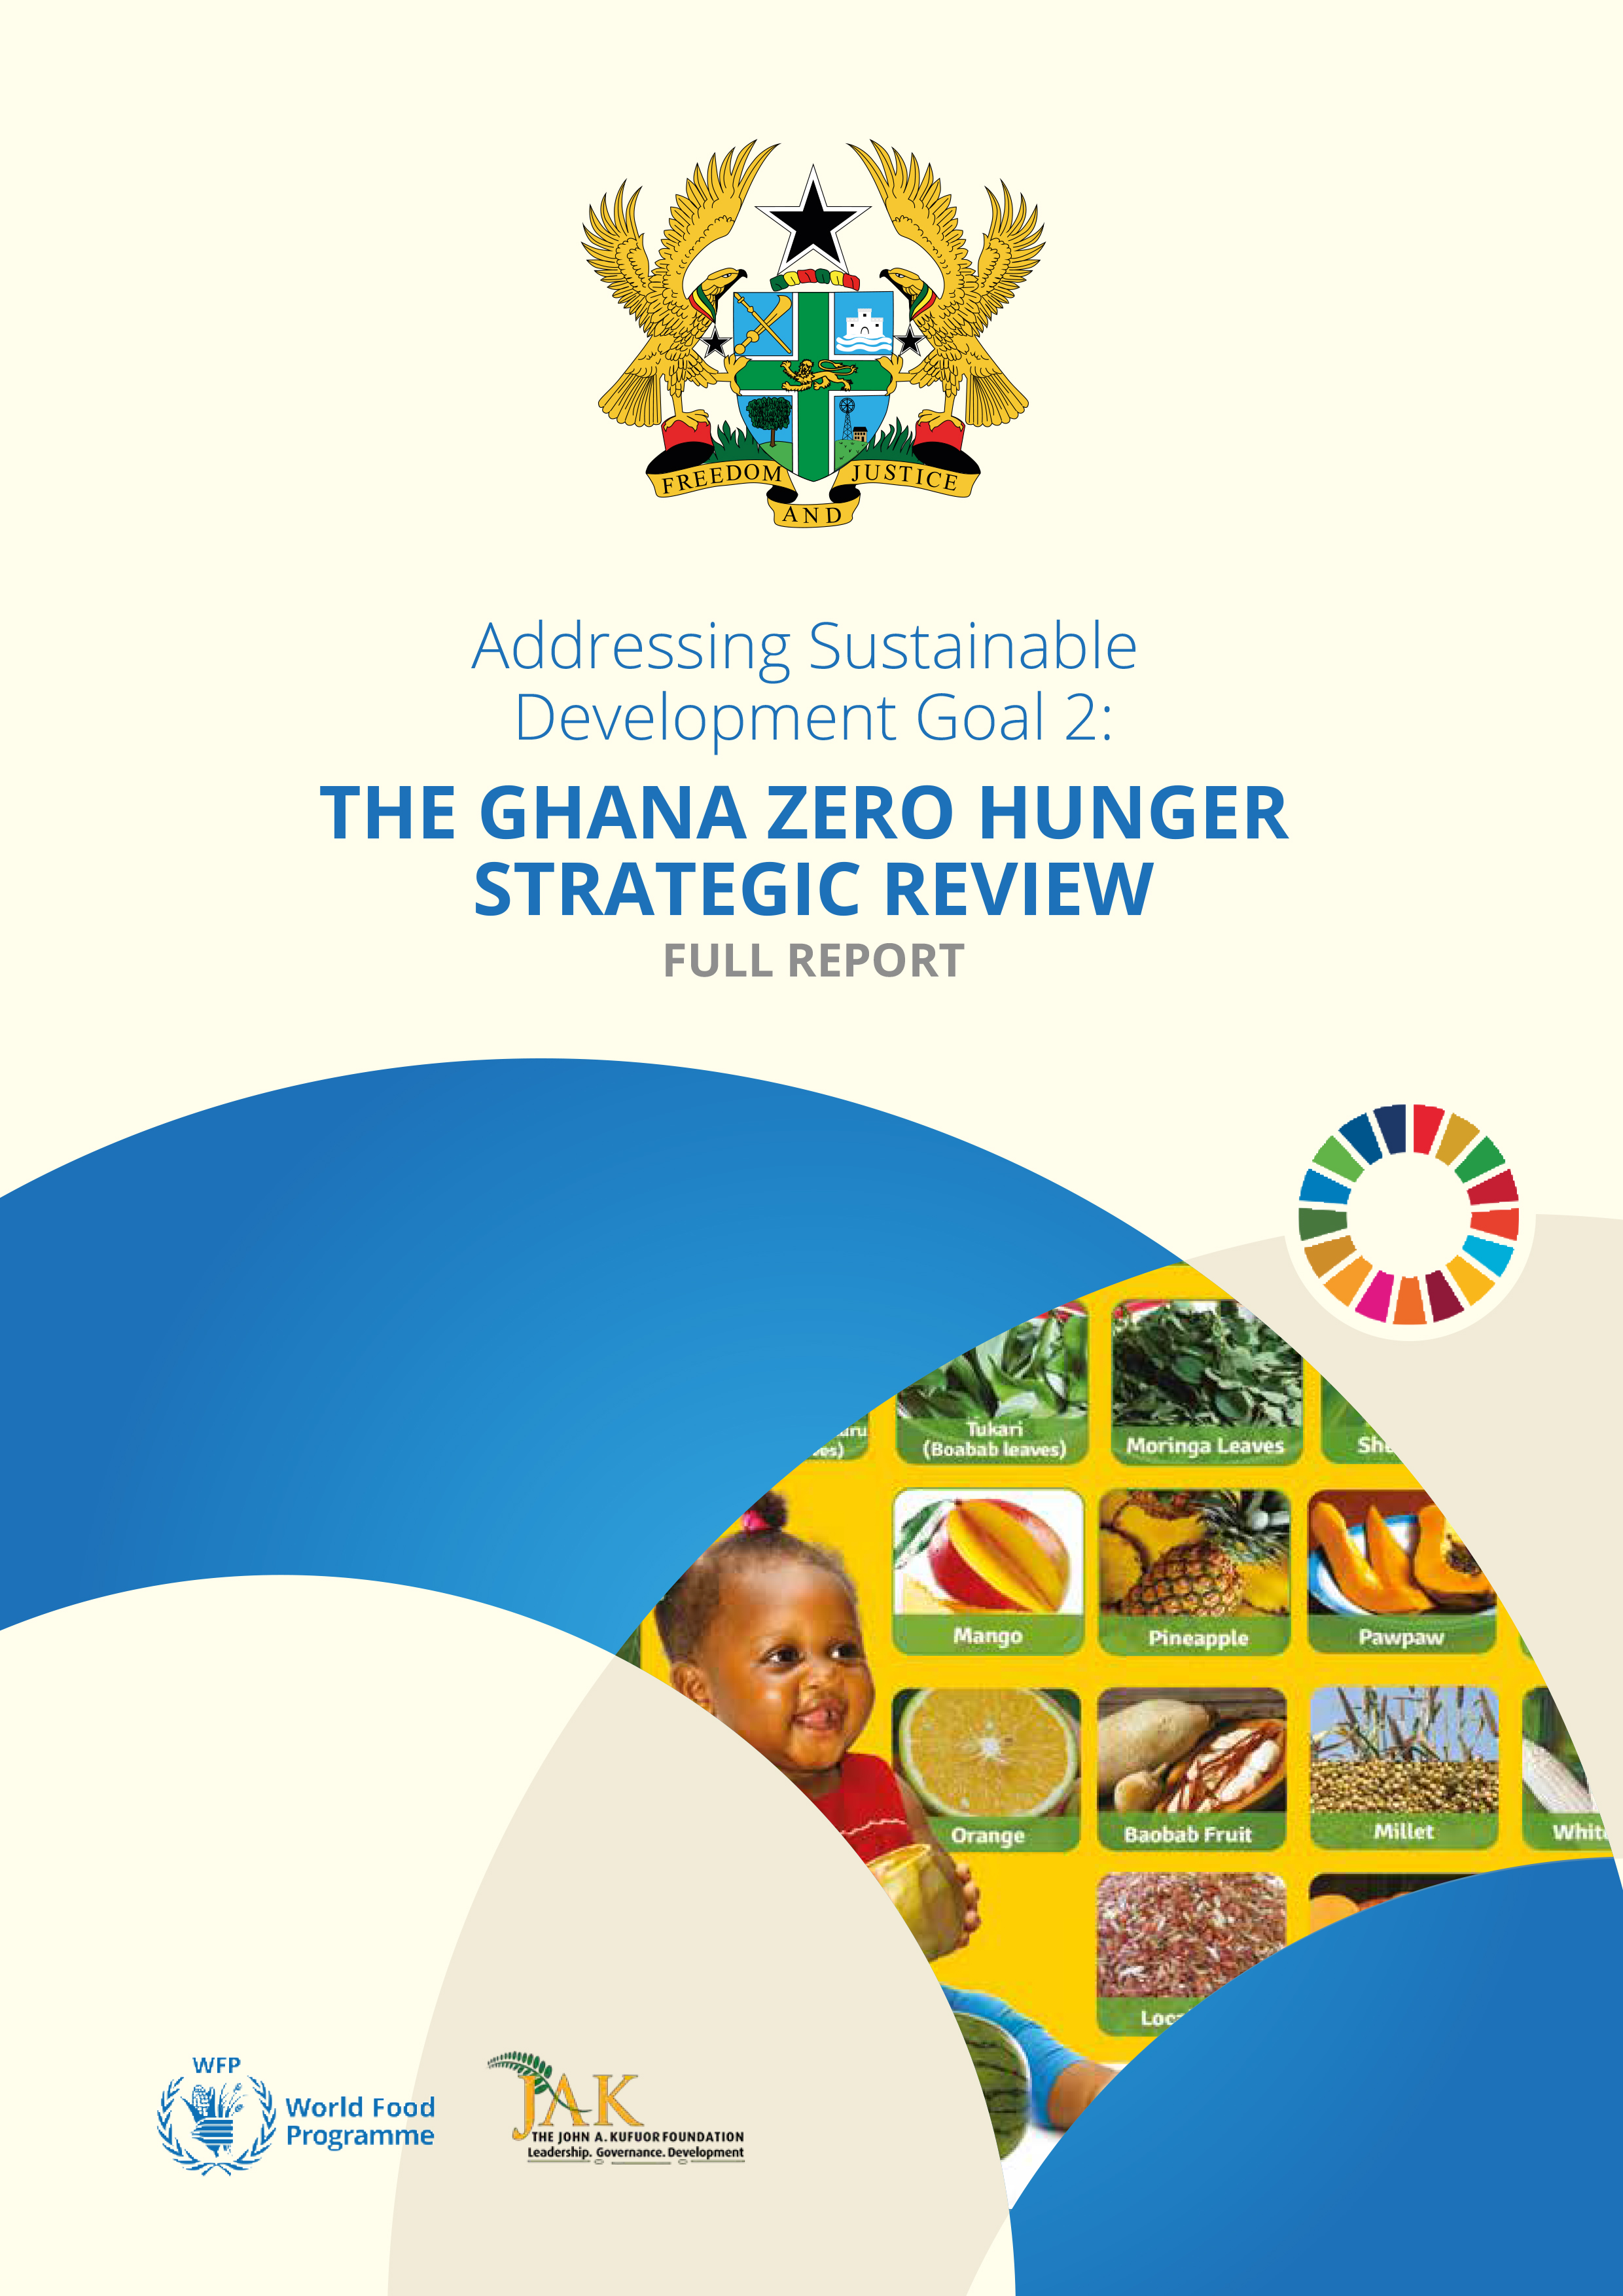 The Ghana Zero Hunger Strategic Review report cover page